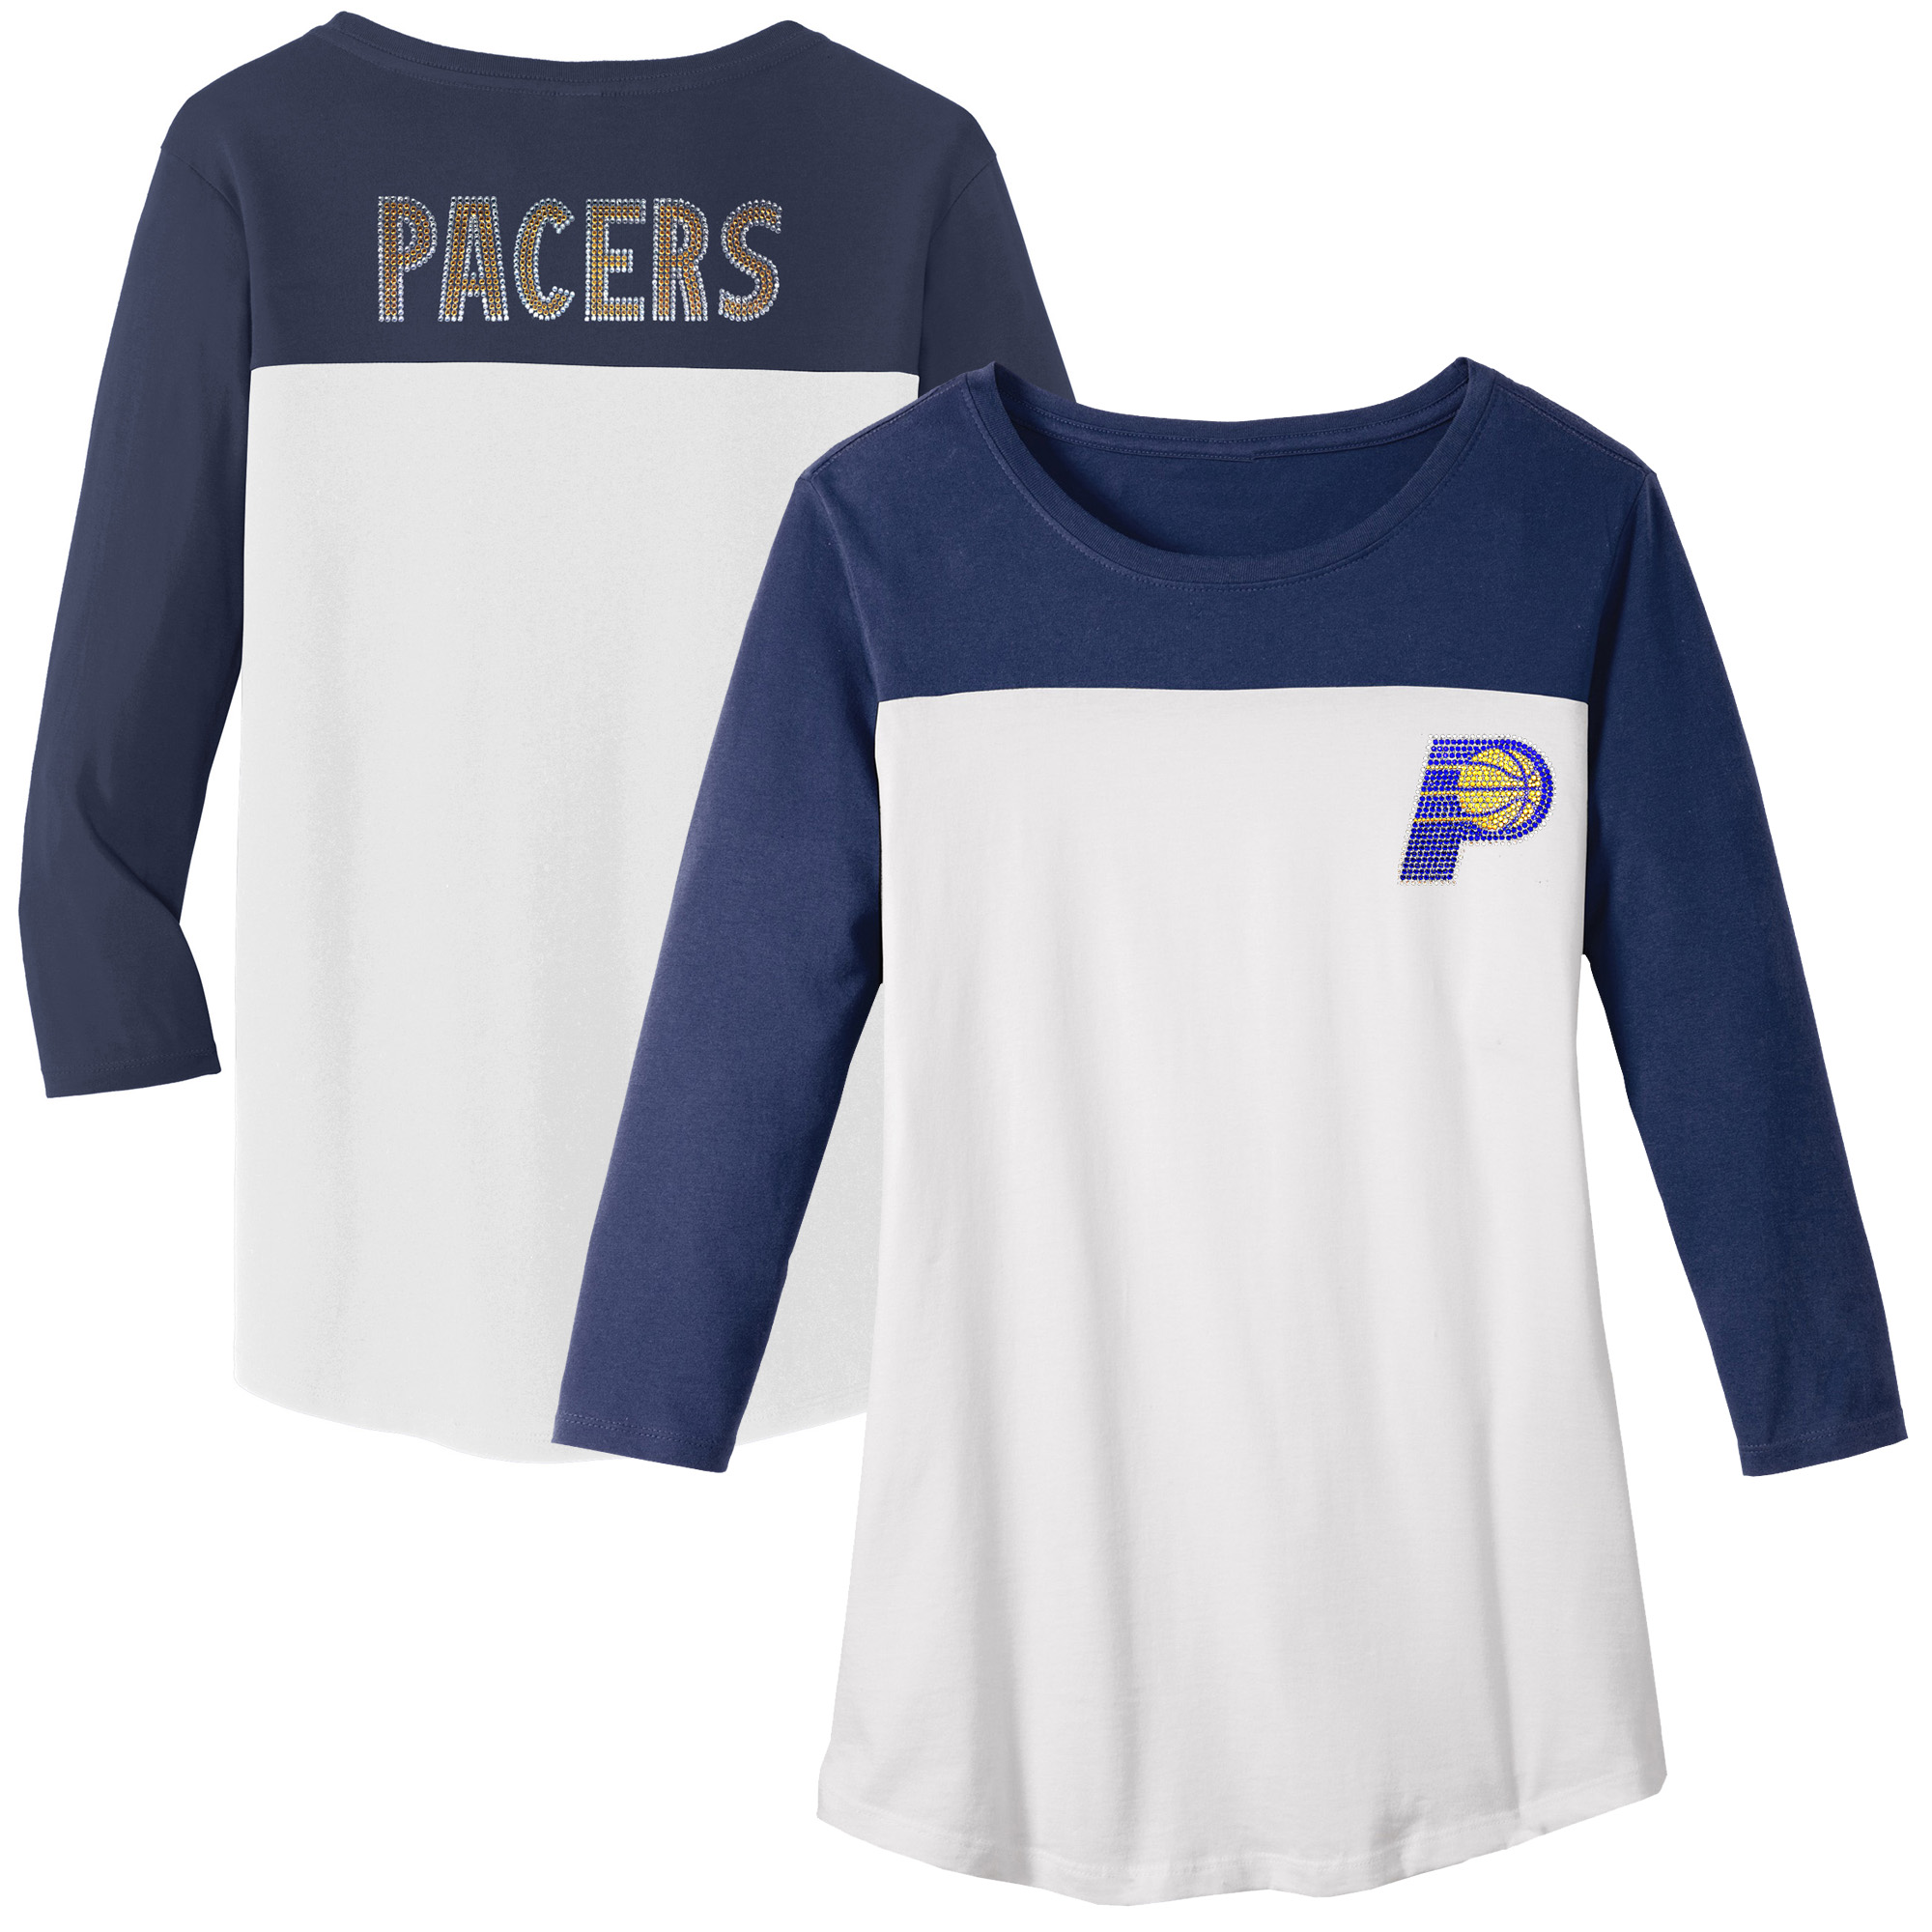 Indiana Pacers Women's Rally Rhinestone Color Blocked 3/4 Sleeve T-Shirt - White